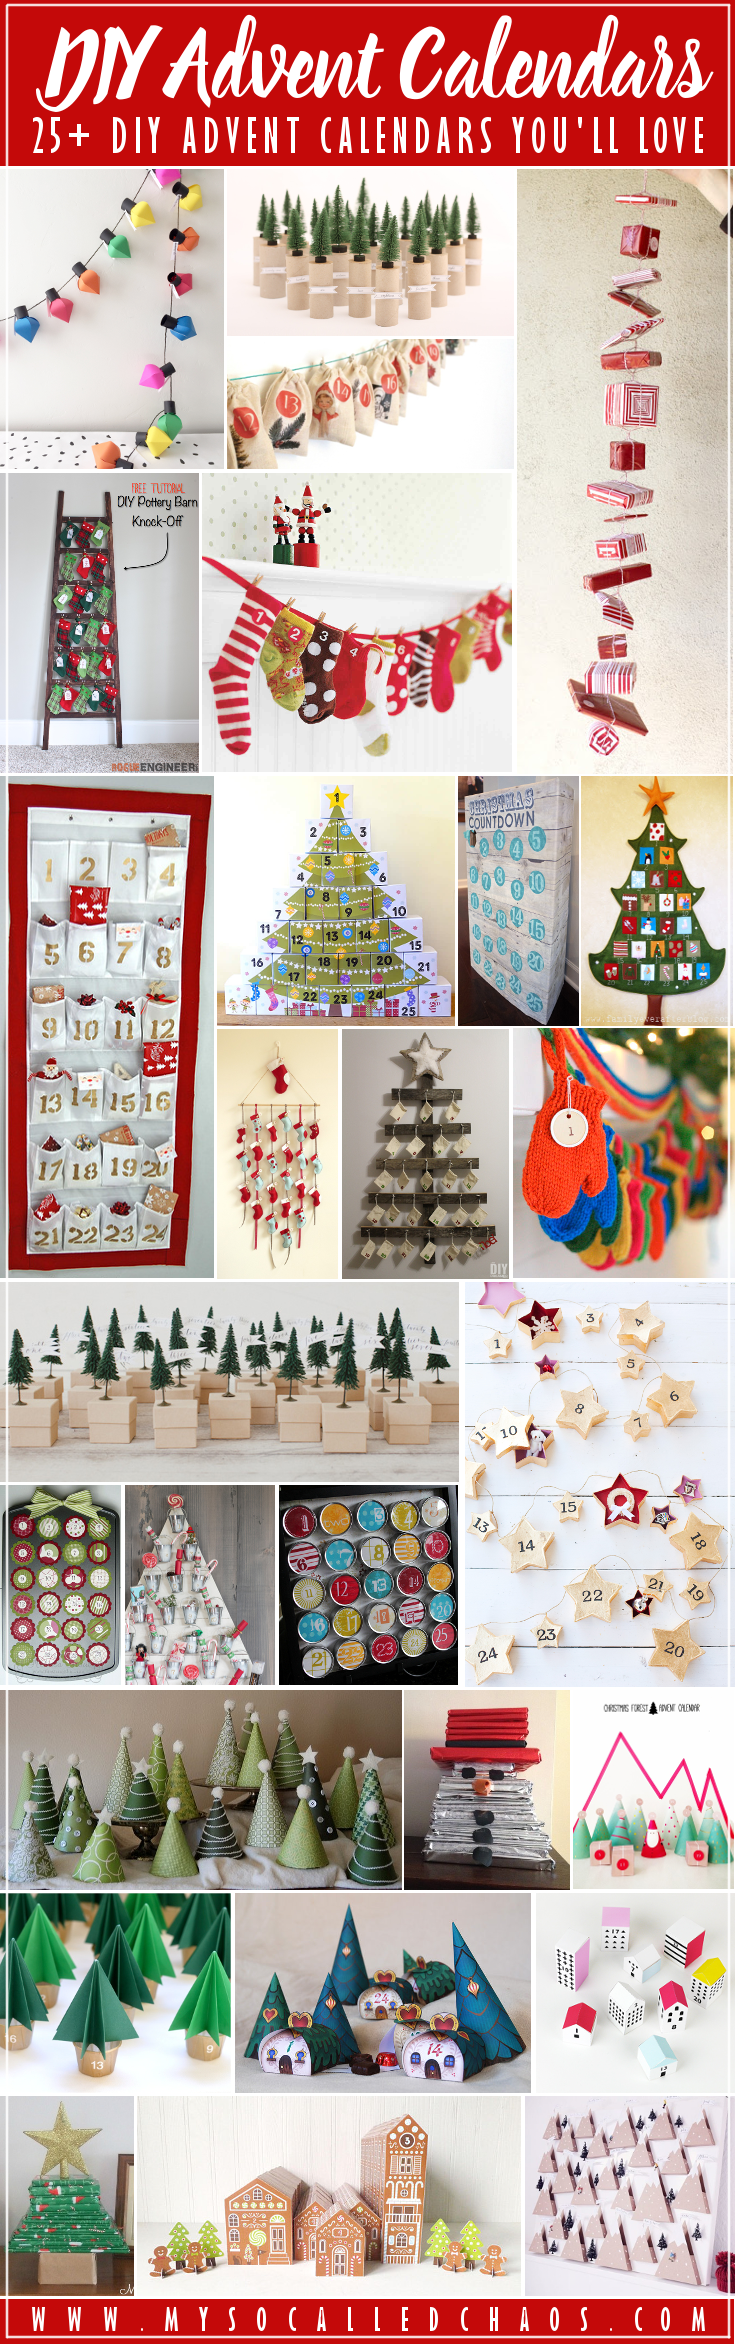 25+ DIY Advent Calendars for Your Christmas Countdown